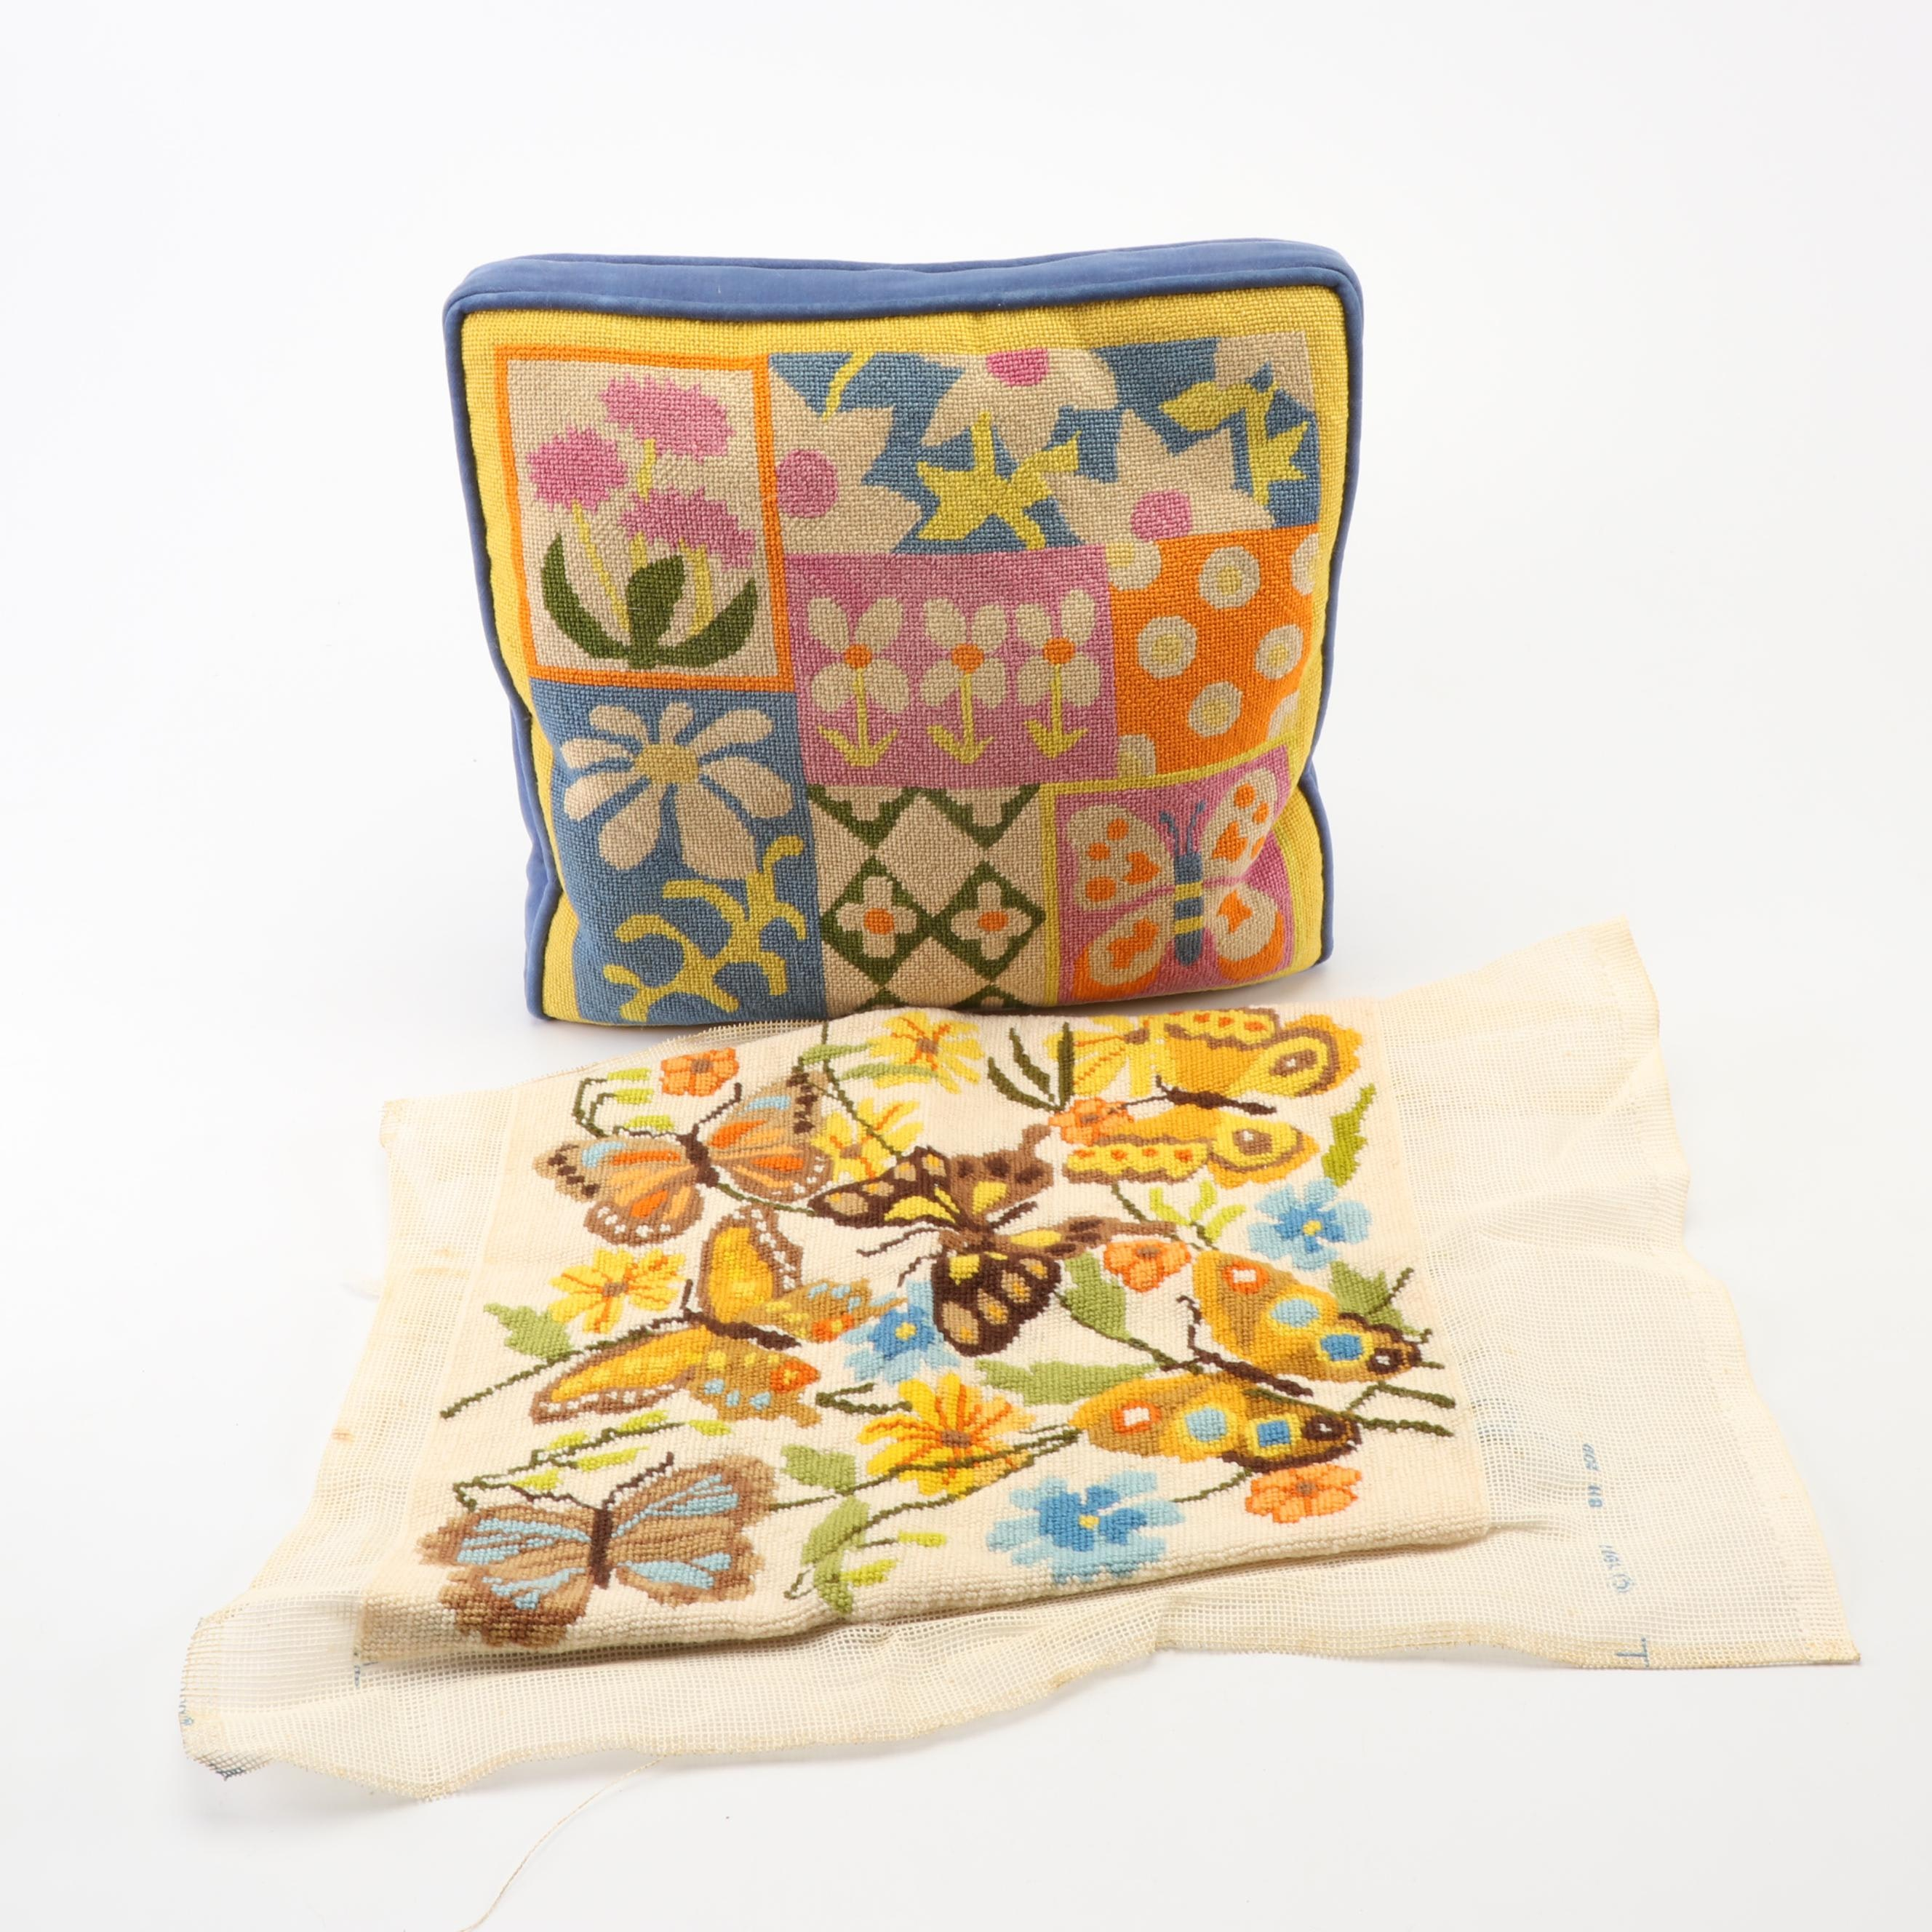 Needlepoint Floral Accent Pillow with Needlepoint Butterfly Project